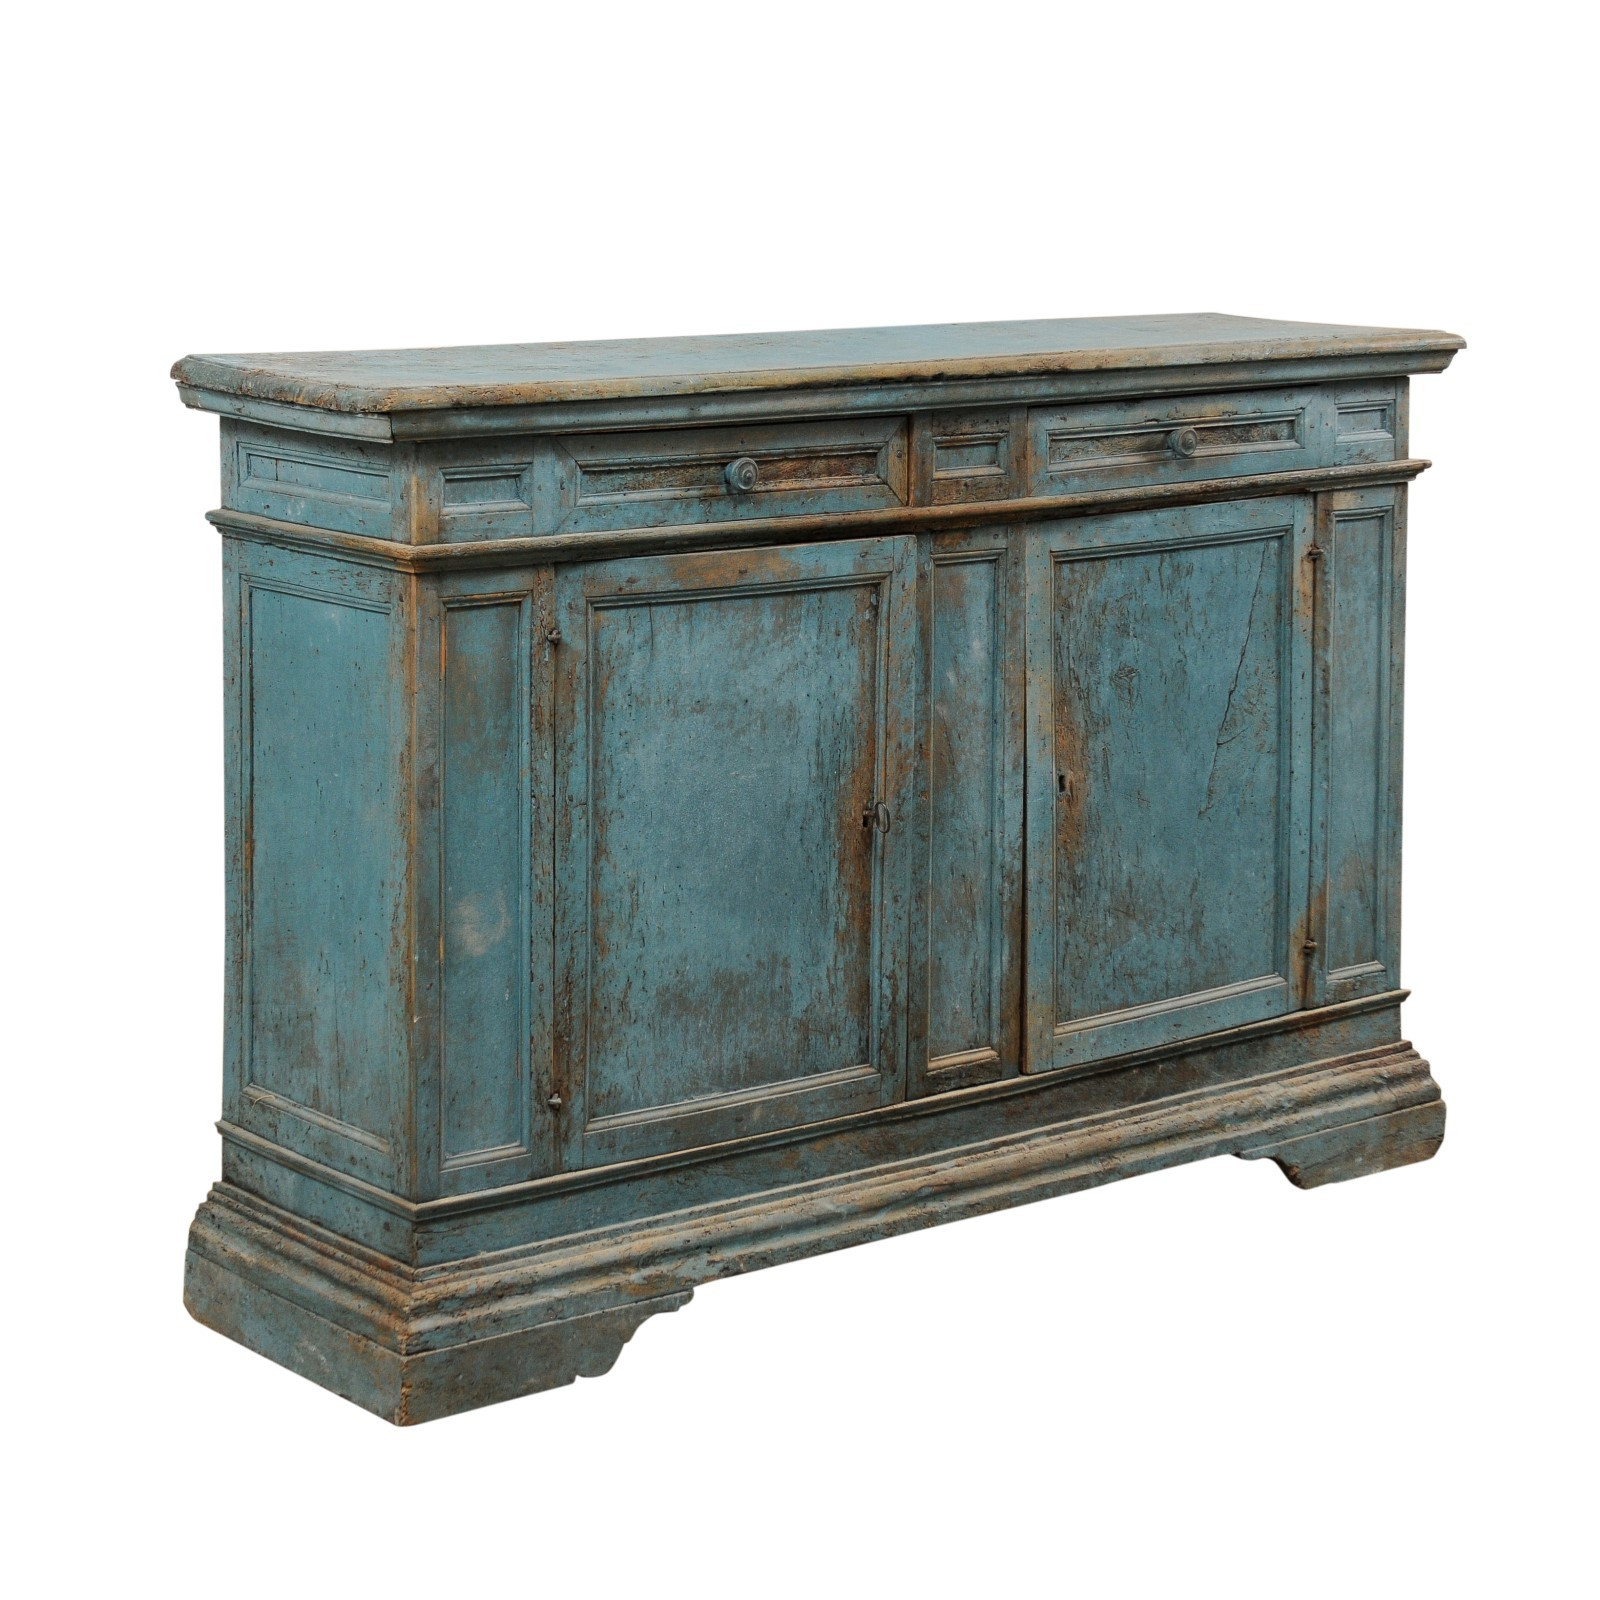 Italian Cabinet in Beautiful Blue, 19th C.